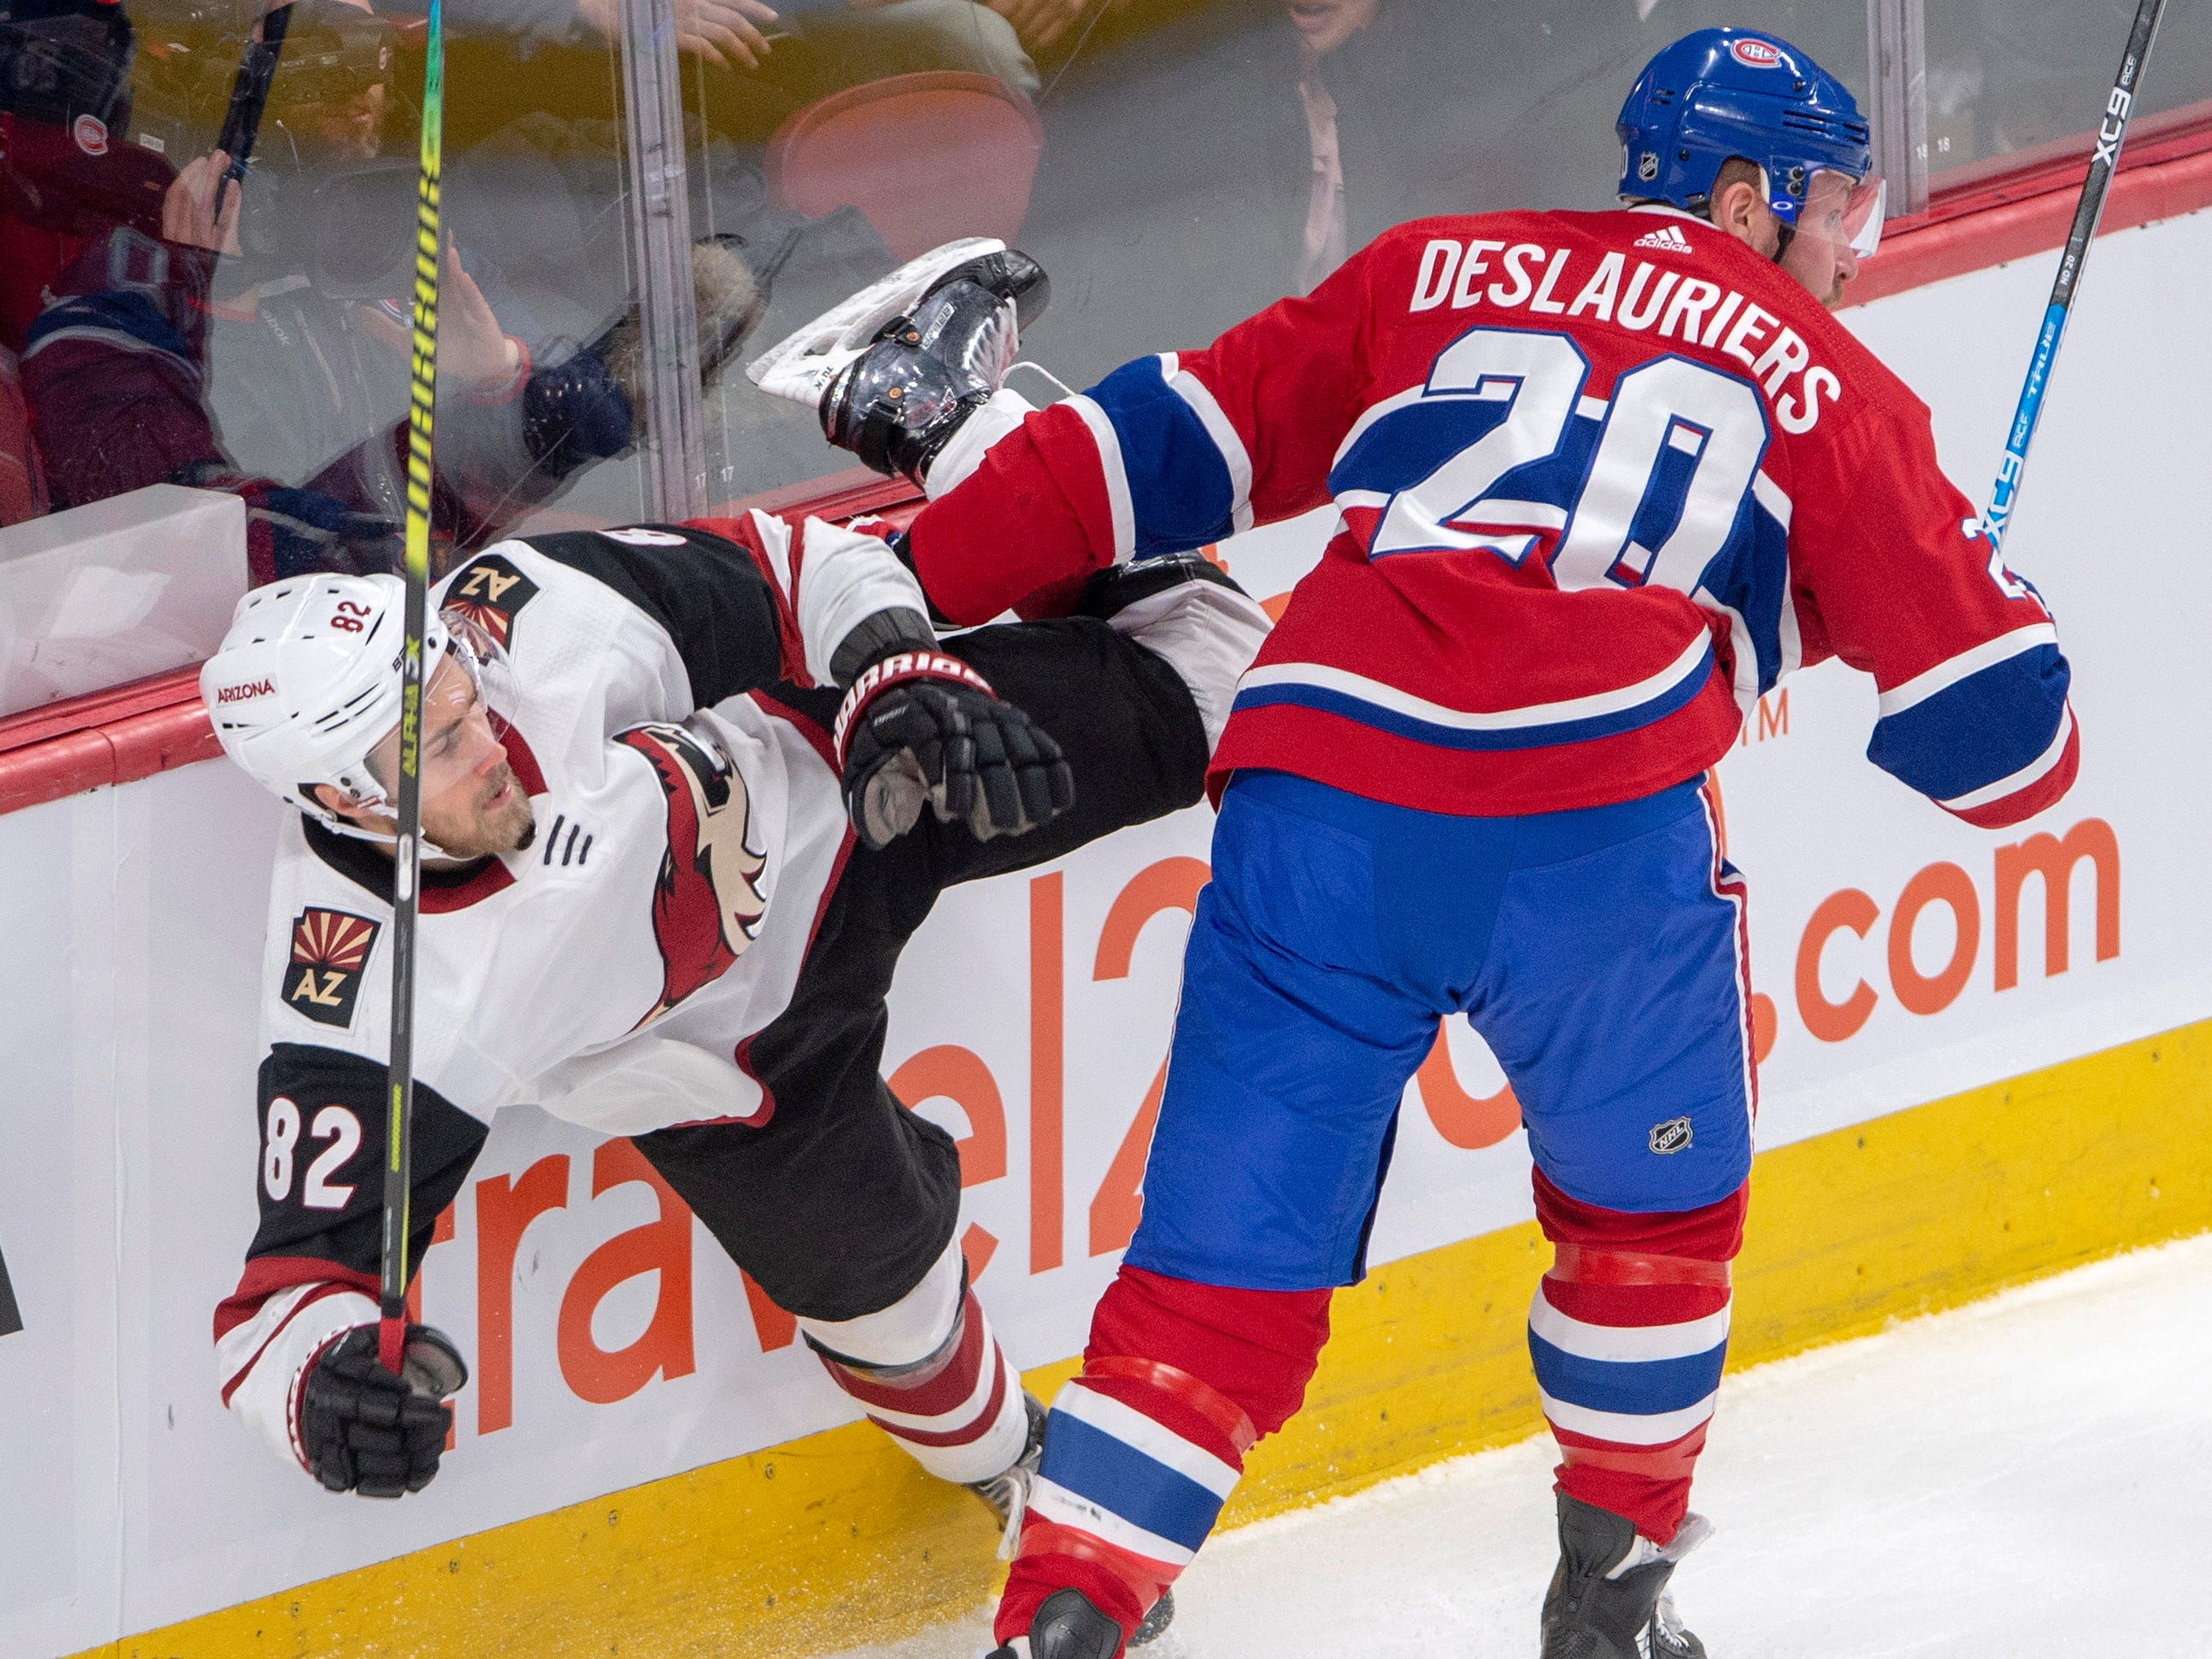 Arizona Coyotes defenseman Jordan Oesterle (82) is checked by Montreal Canadiens left wing Nicolas Deslauriers (20) during the first period of an NHL hockey game Wednesday, Jan. 23, 2019, in Montreal.